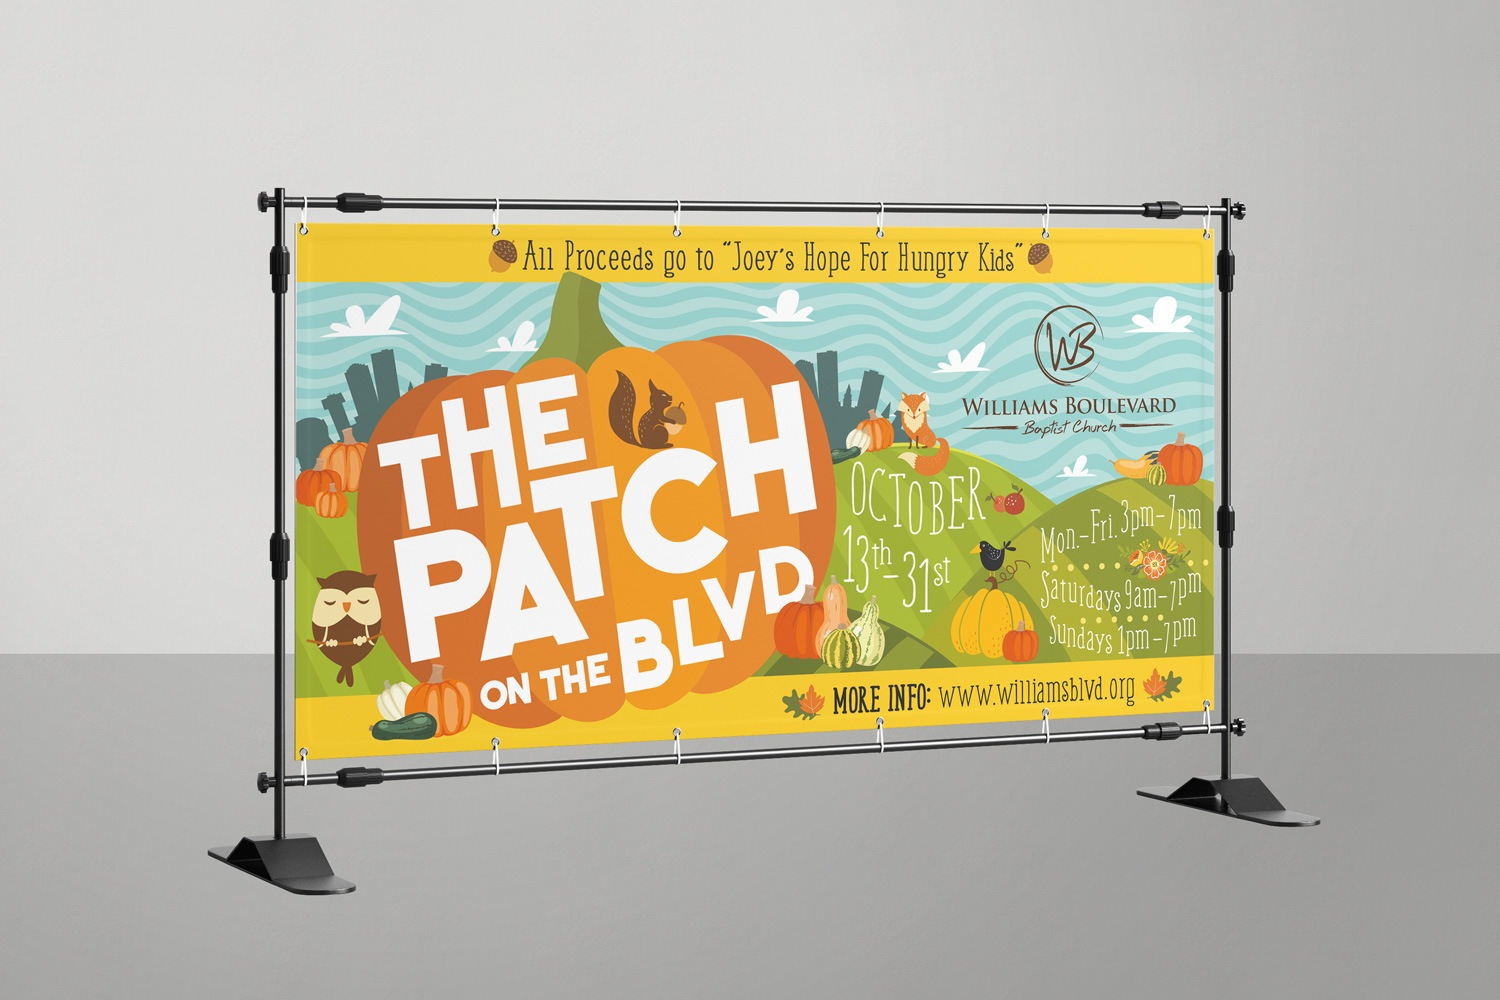 church graphics examples of background banners design and printing ideas